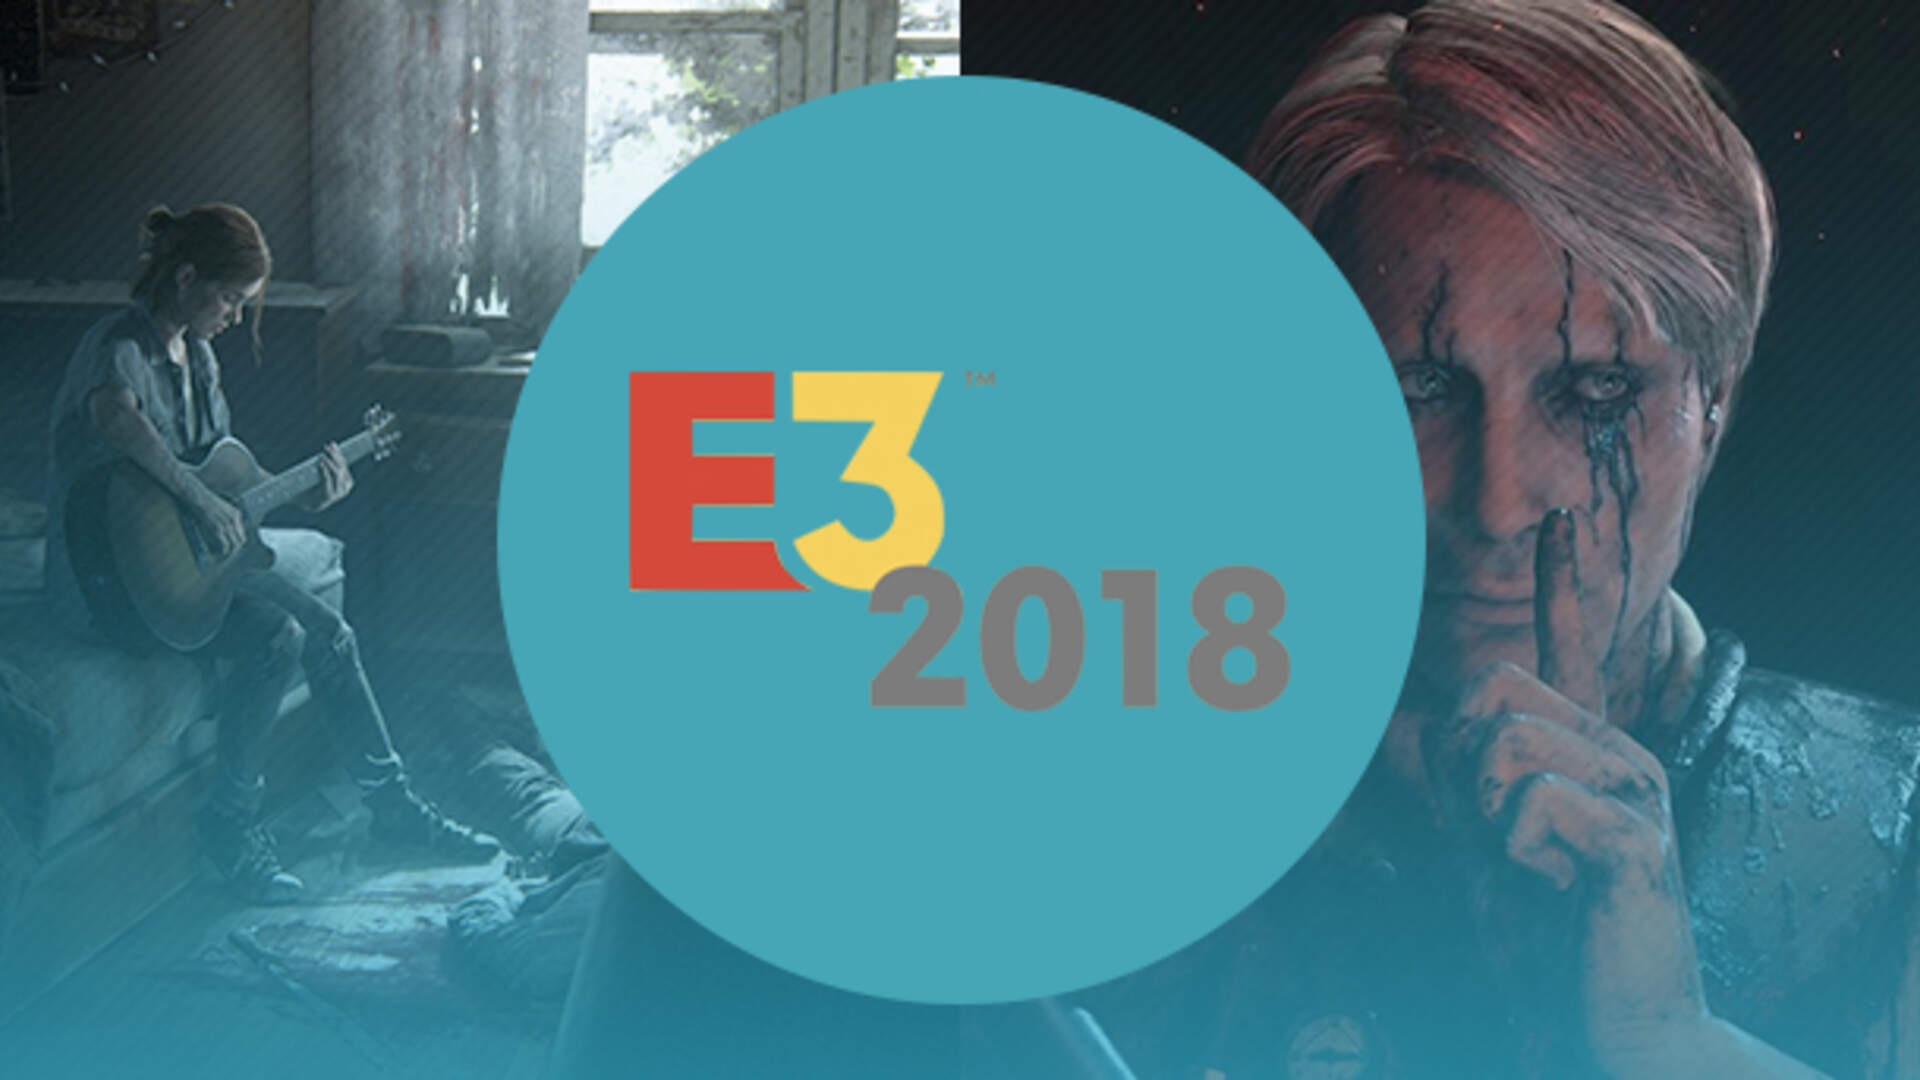 PlayStation E3 2018 Conference - All Games and Announcements